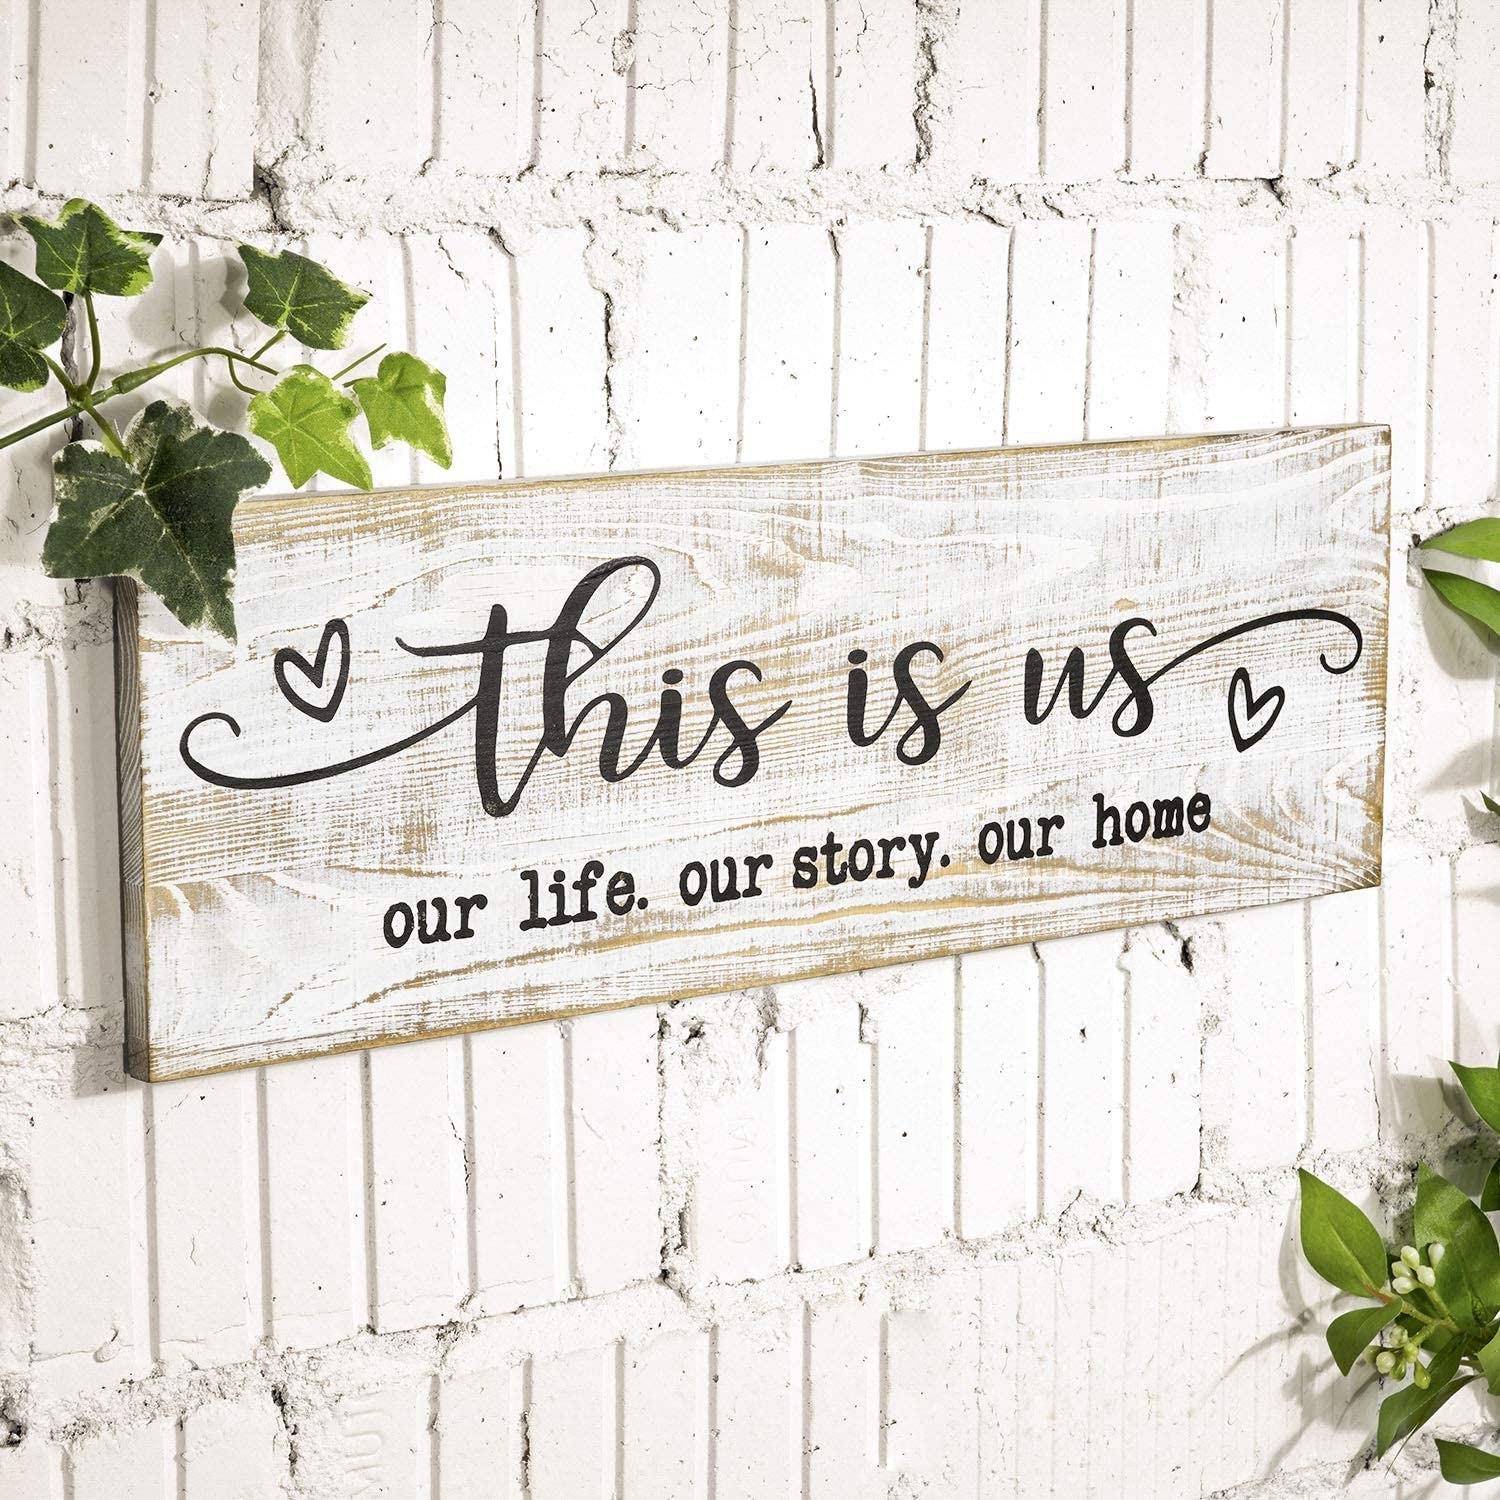 """CHICVITA Rustic Wood Wall Sign, This is Us Printed Farmhouse Wall Decor For Living Room Bedroom Entryway Kitchen, 16.5"""" x 5.5"""", White"""